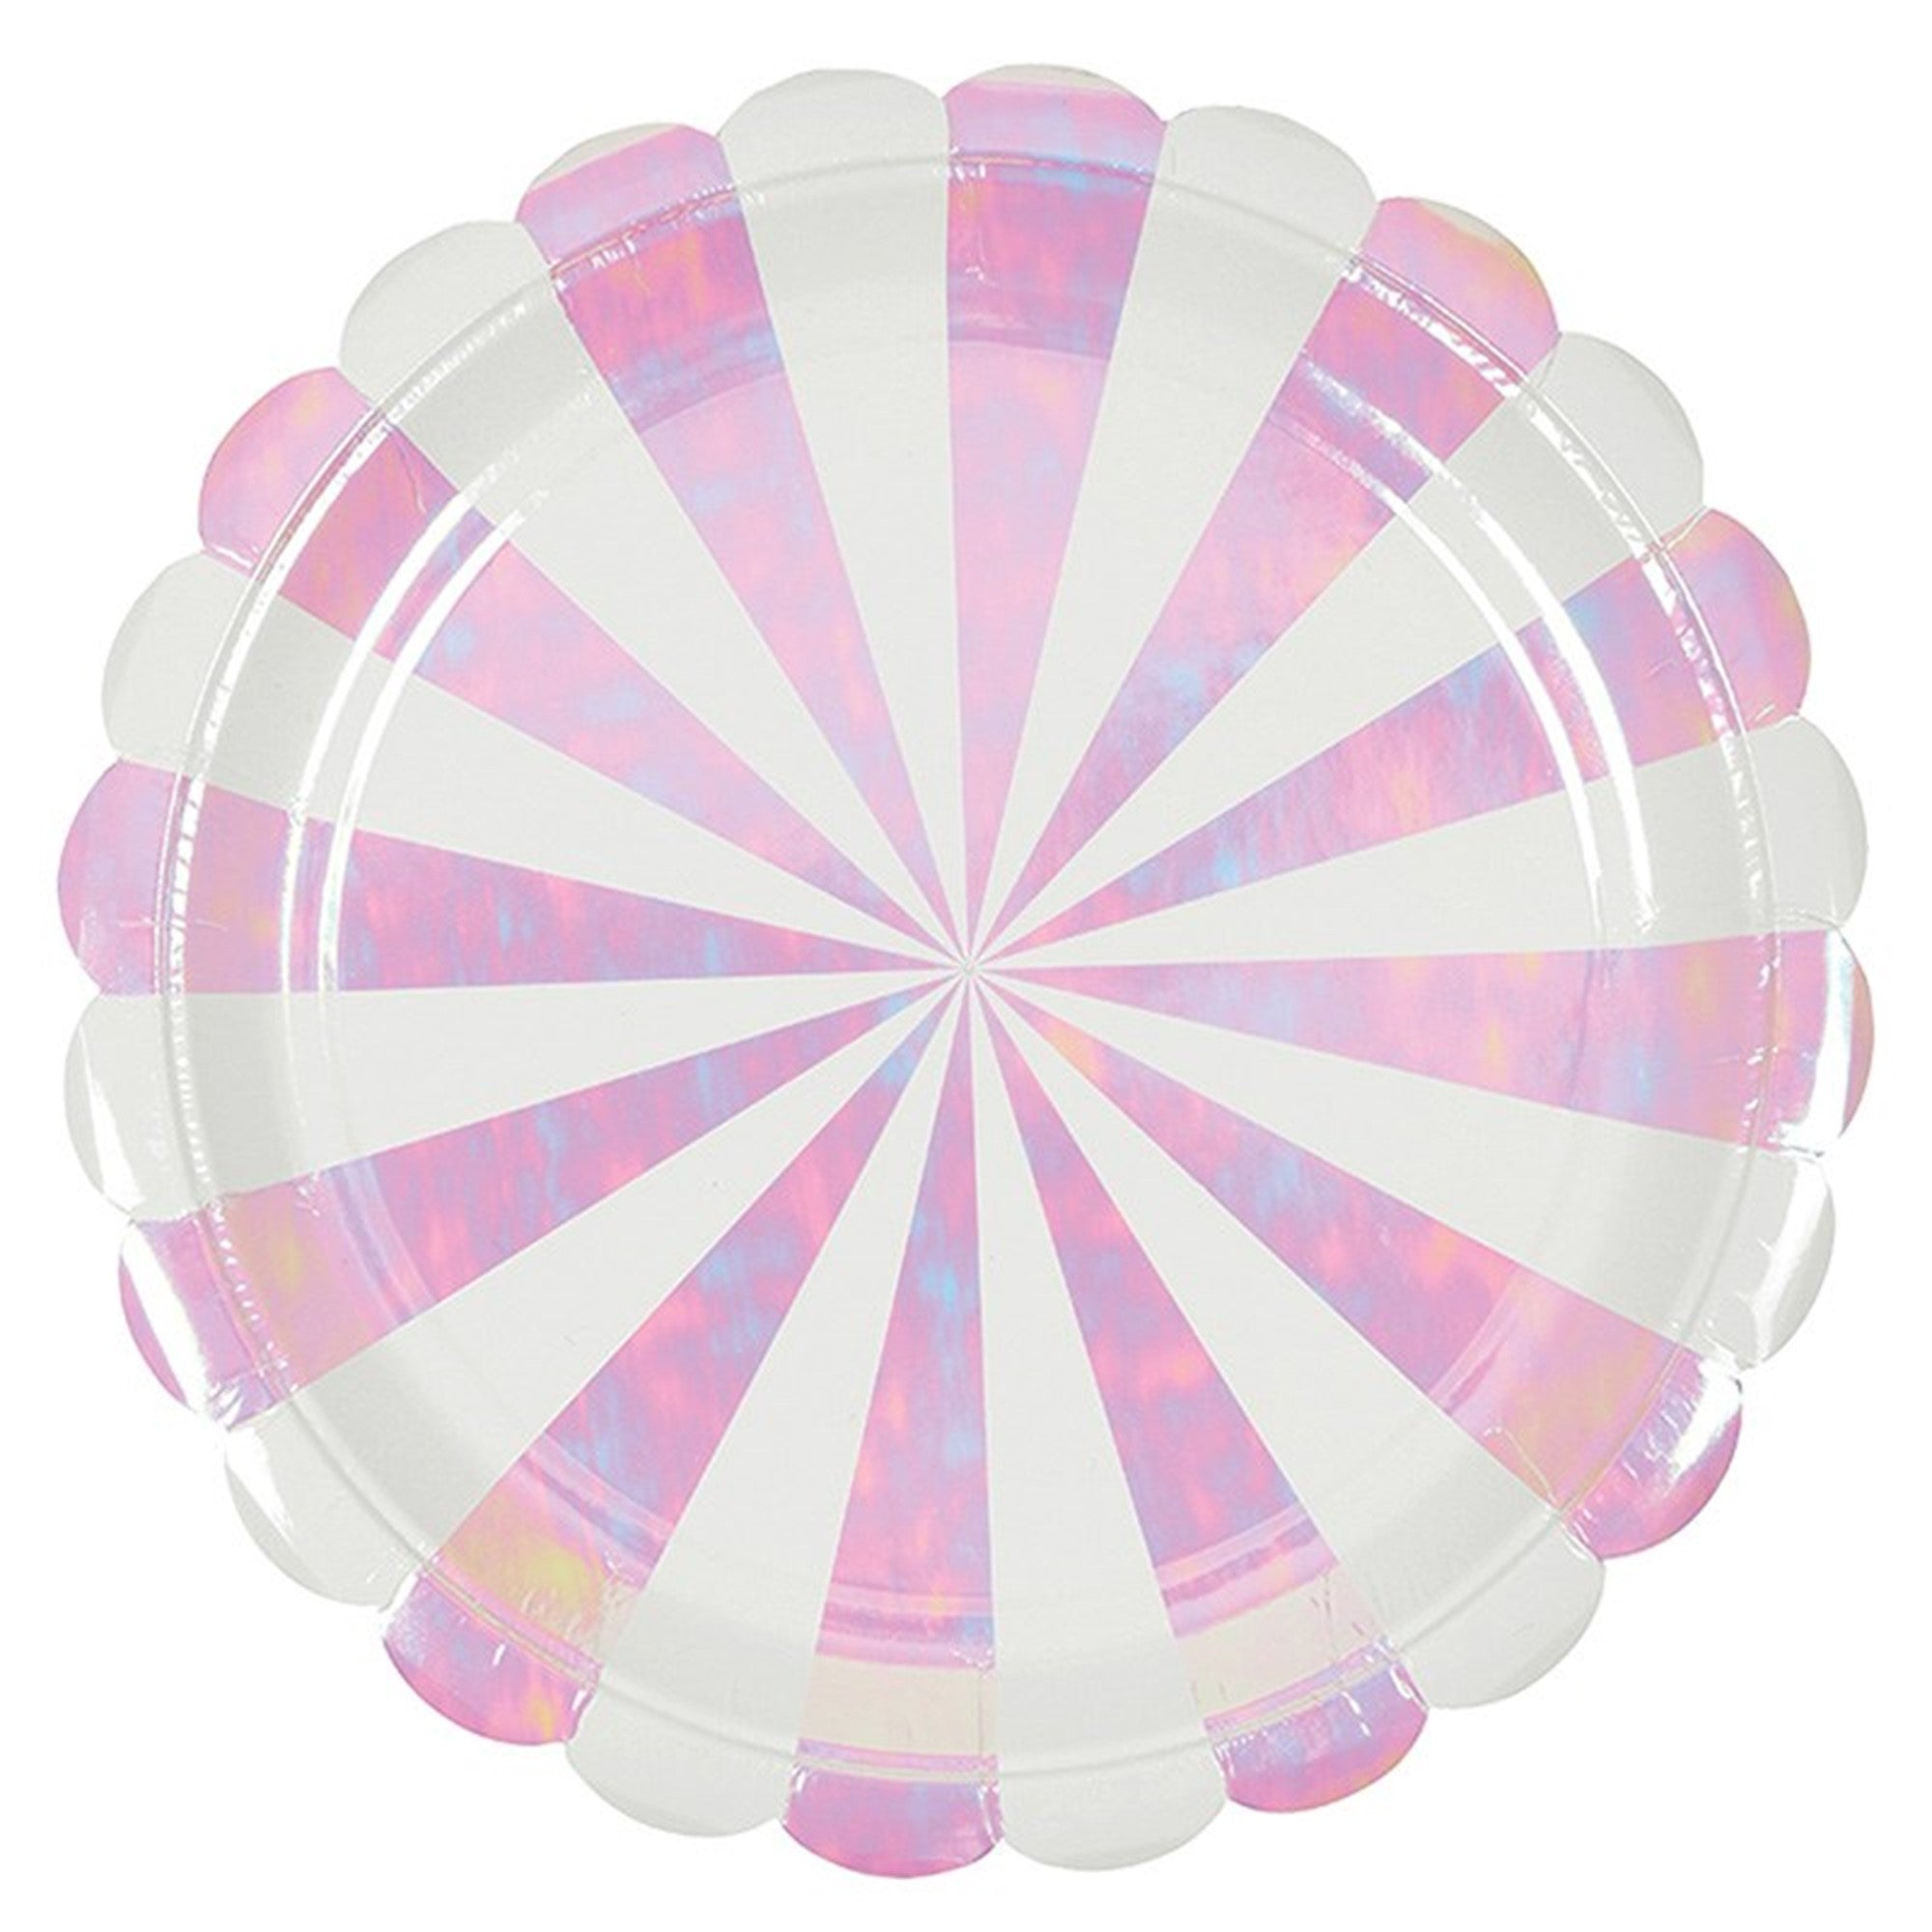 Meri Meri Iridescent Paper Plate - Large, MM-Meri Meri UK, Putti Fine Furnishings